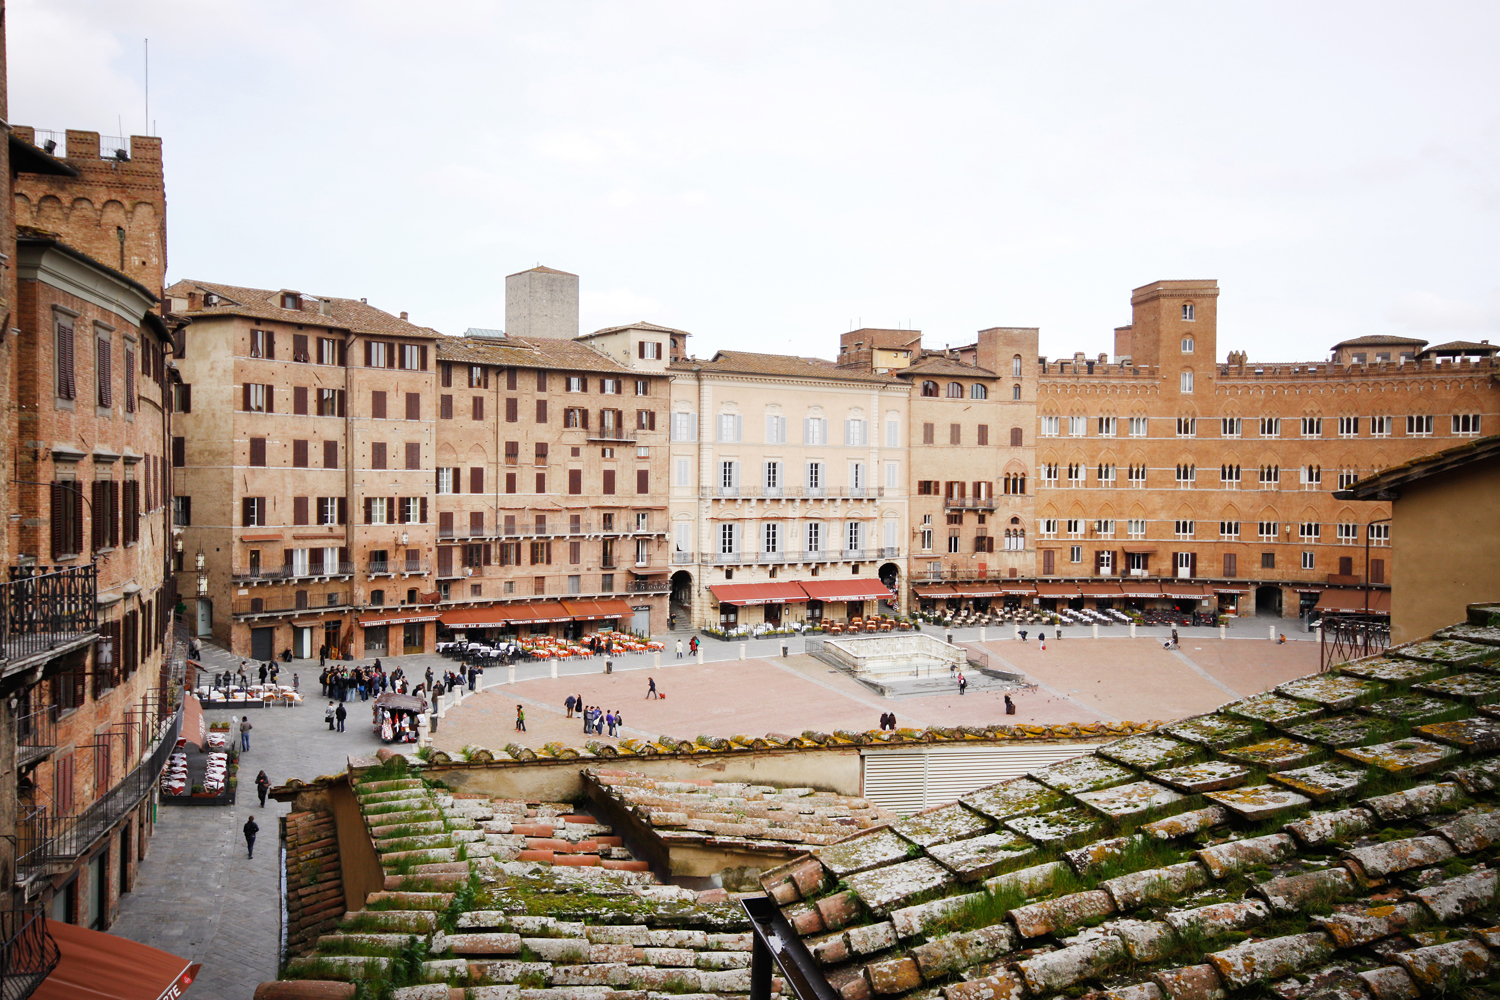 Apartment for Sale at Beautiful apartment with views of Piazza del Campo Siena, 53100 Italy